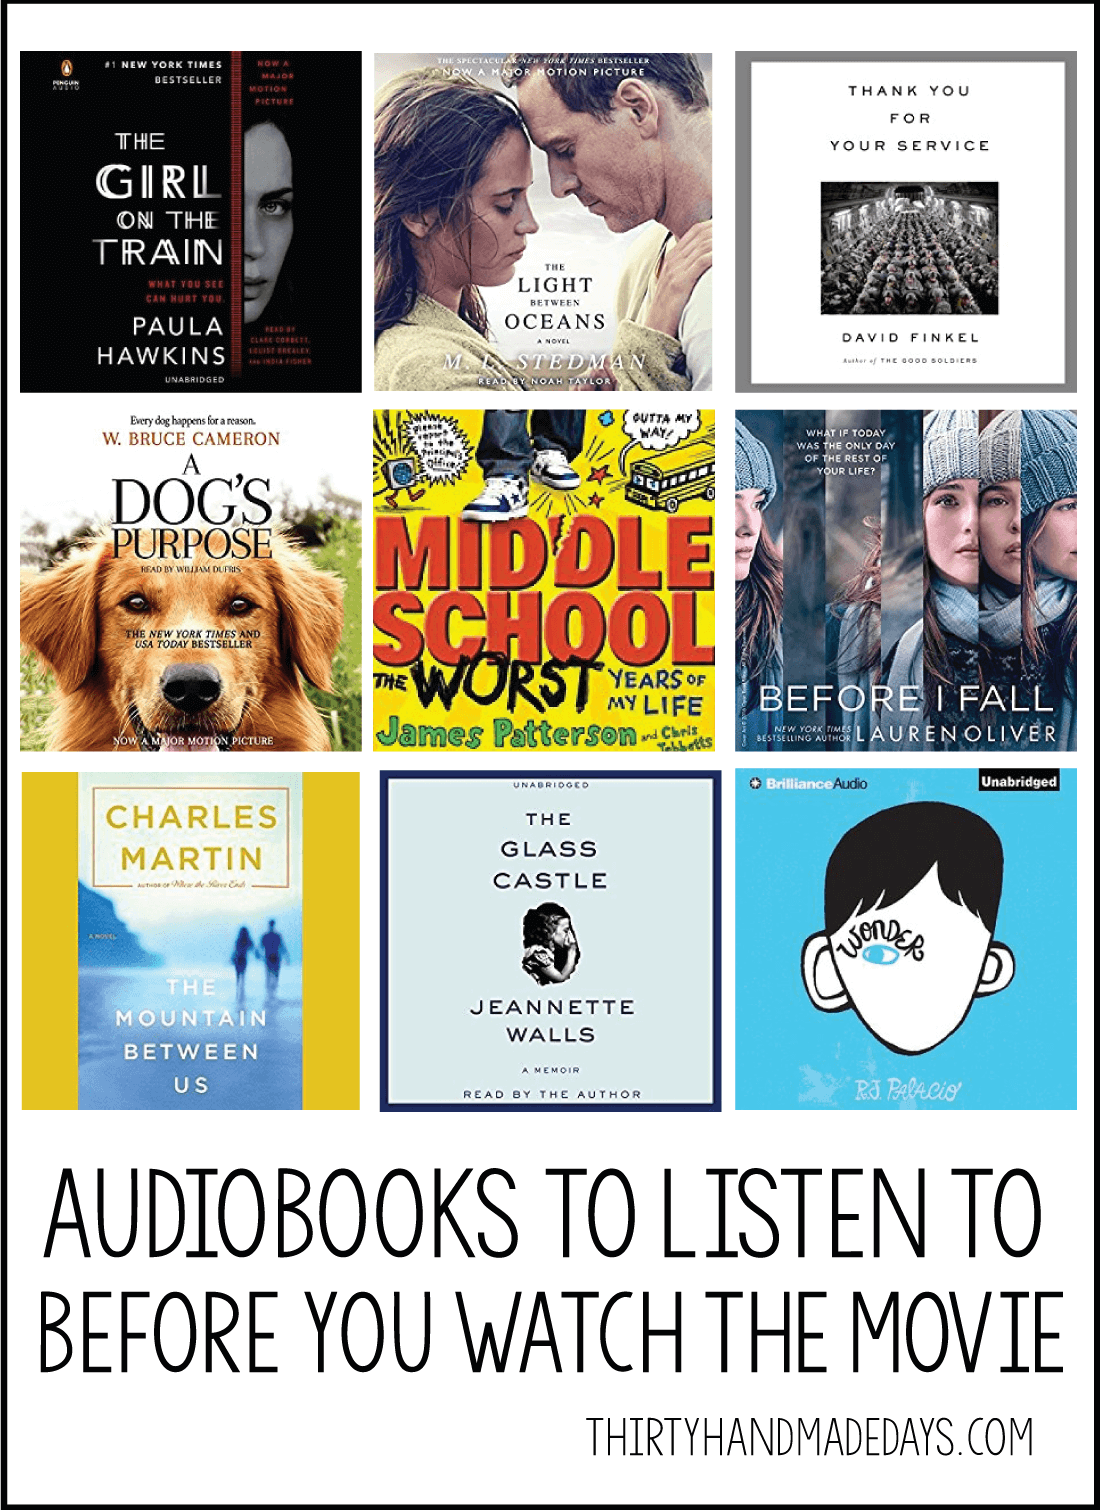 Audible Audiobooks to listen to before you see the movie- make sure to read/listen to these books before hitting the theater! www.thirtyhandmadedays.com